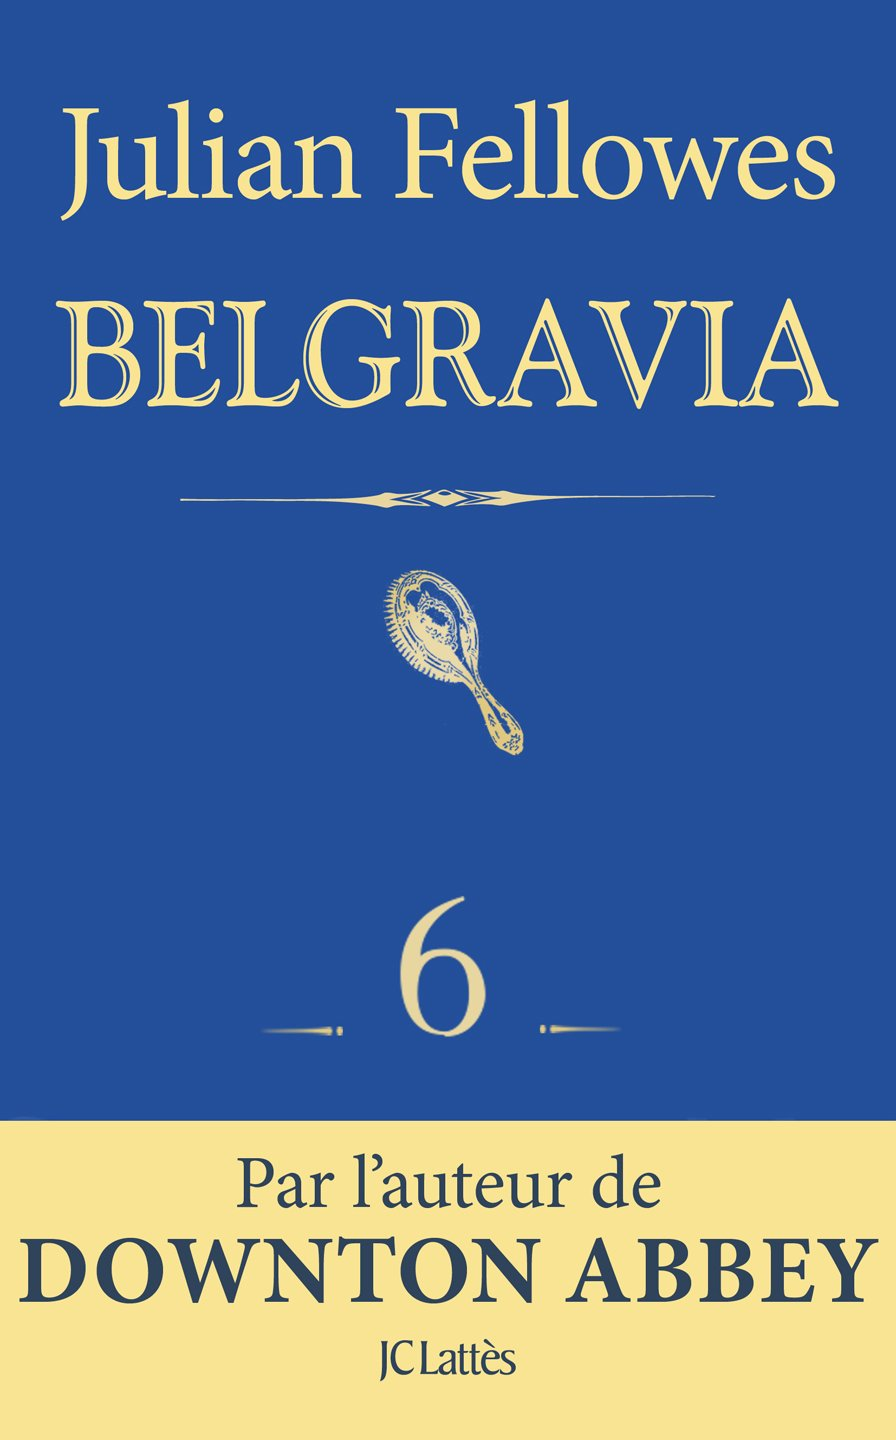 Couverture : Julian Fellowes Belgravia - Épisode 6